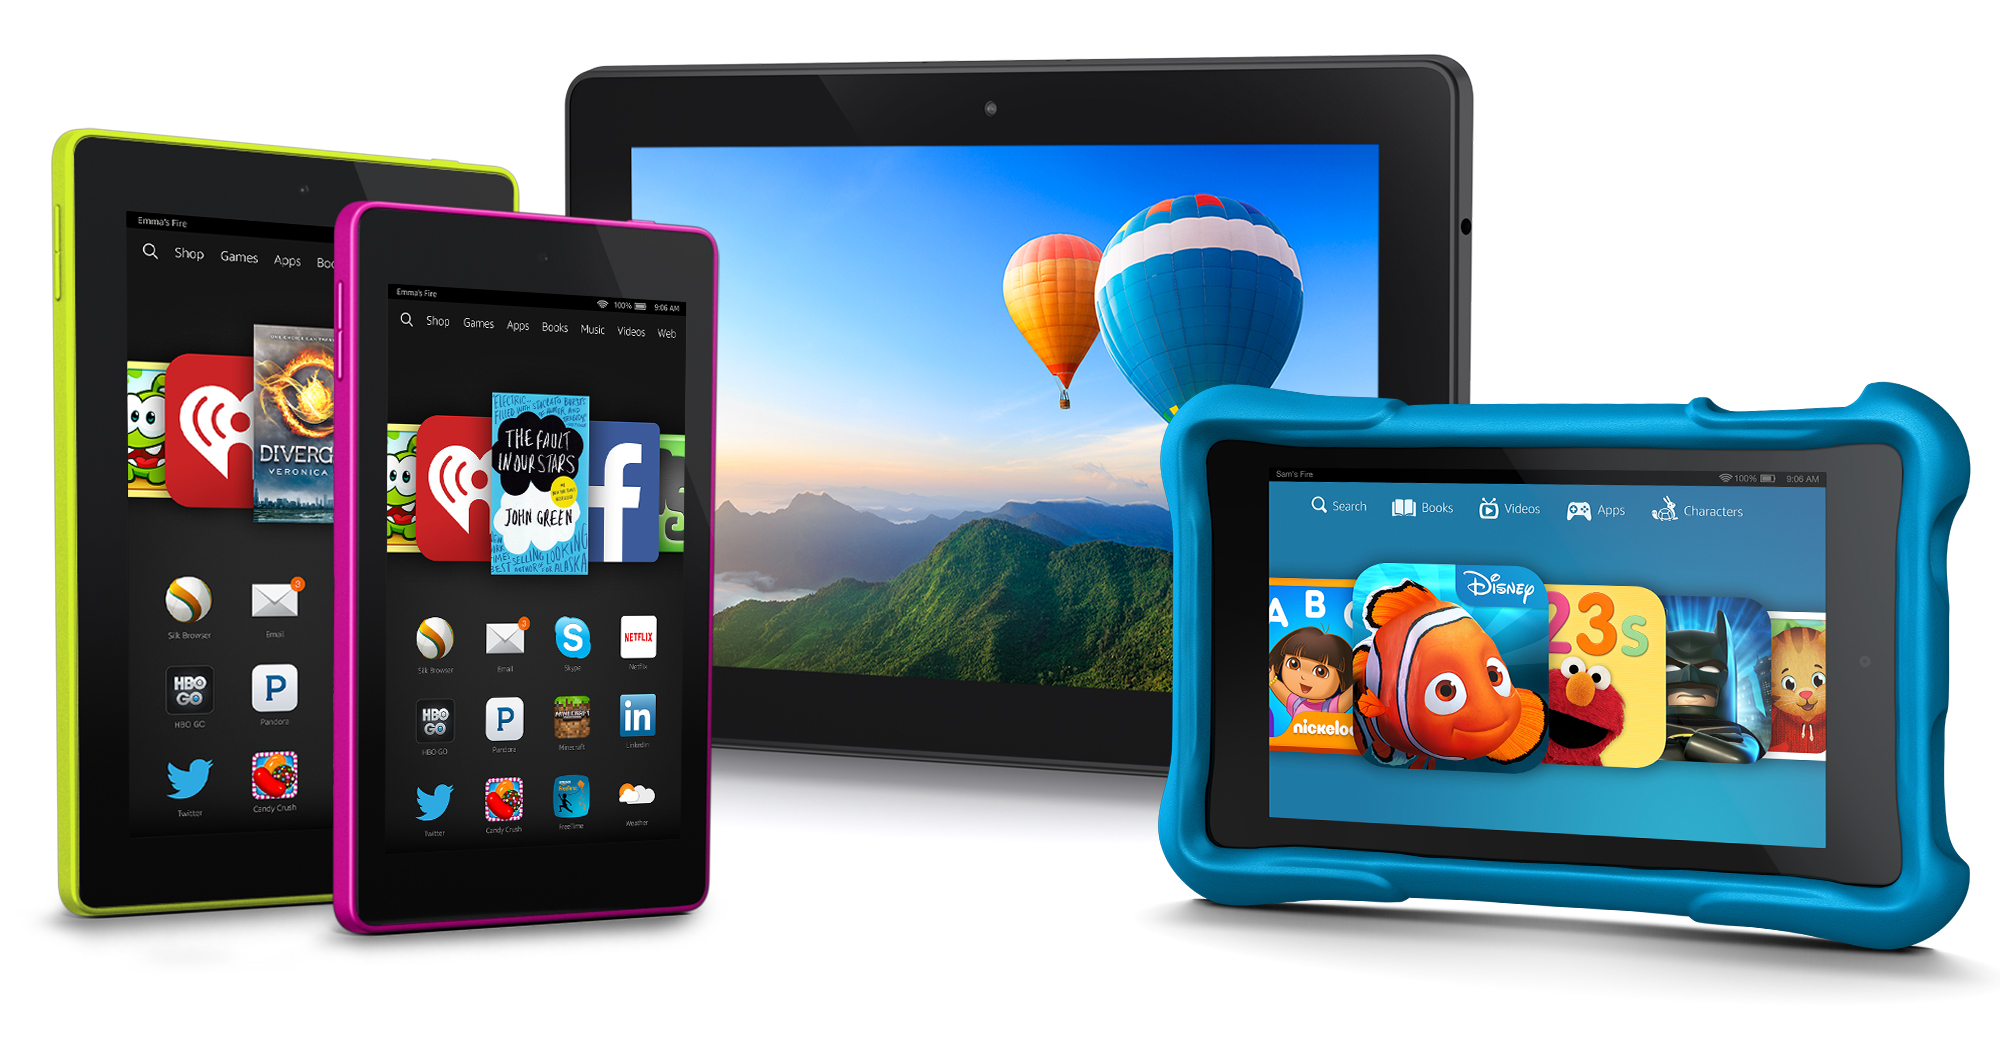 Amazon Fire tablet family (September 2014)